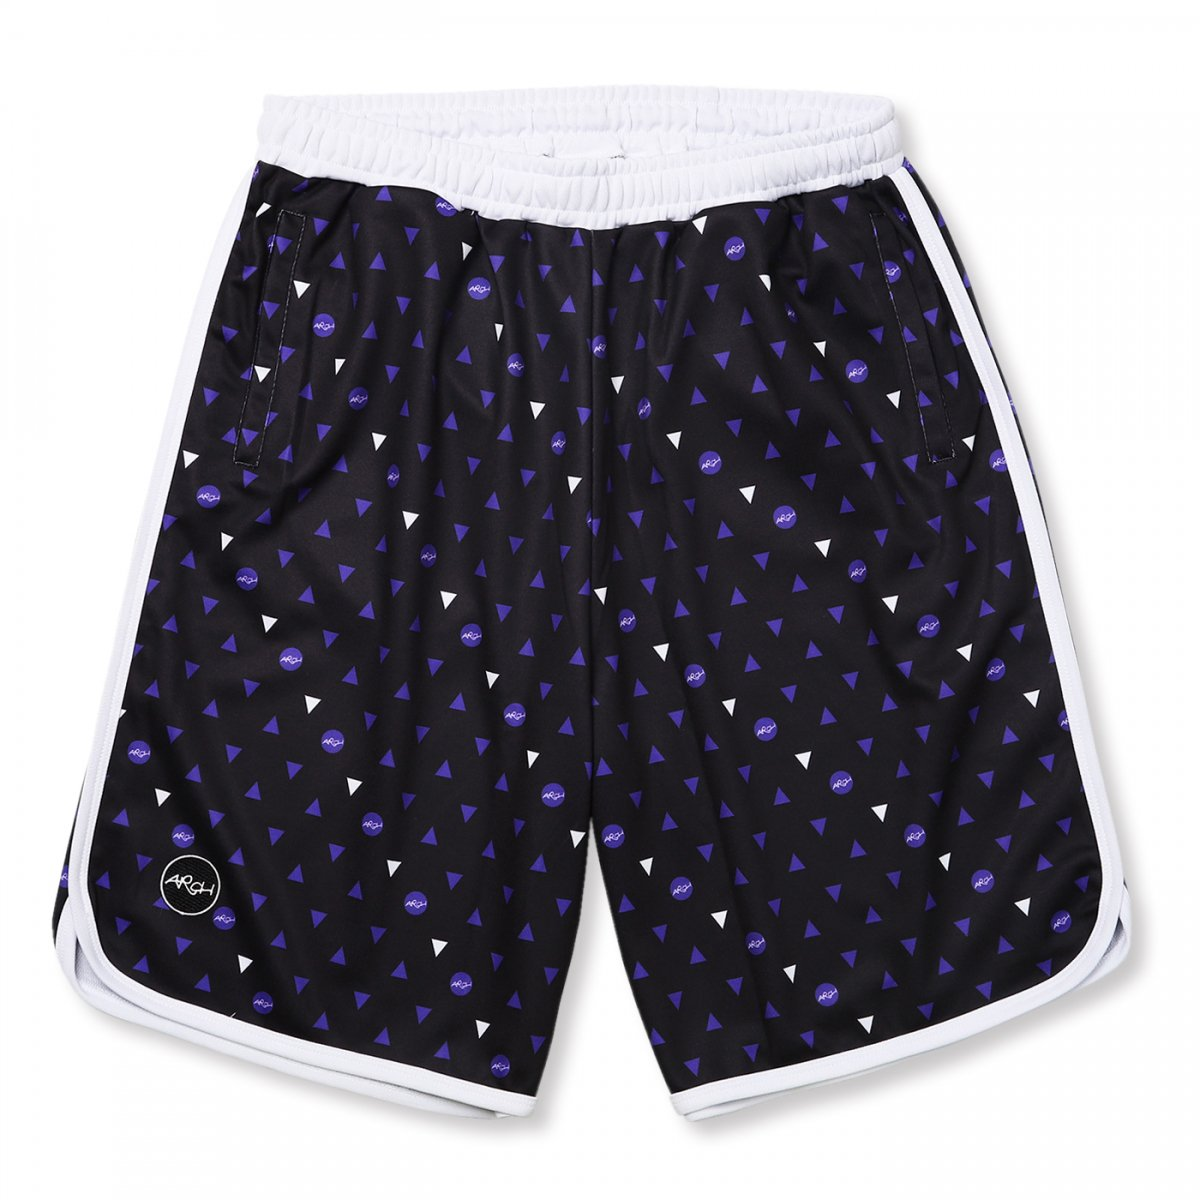 candy drop shorts【black/purple】